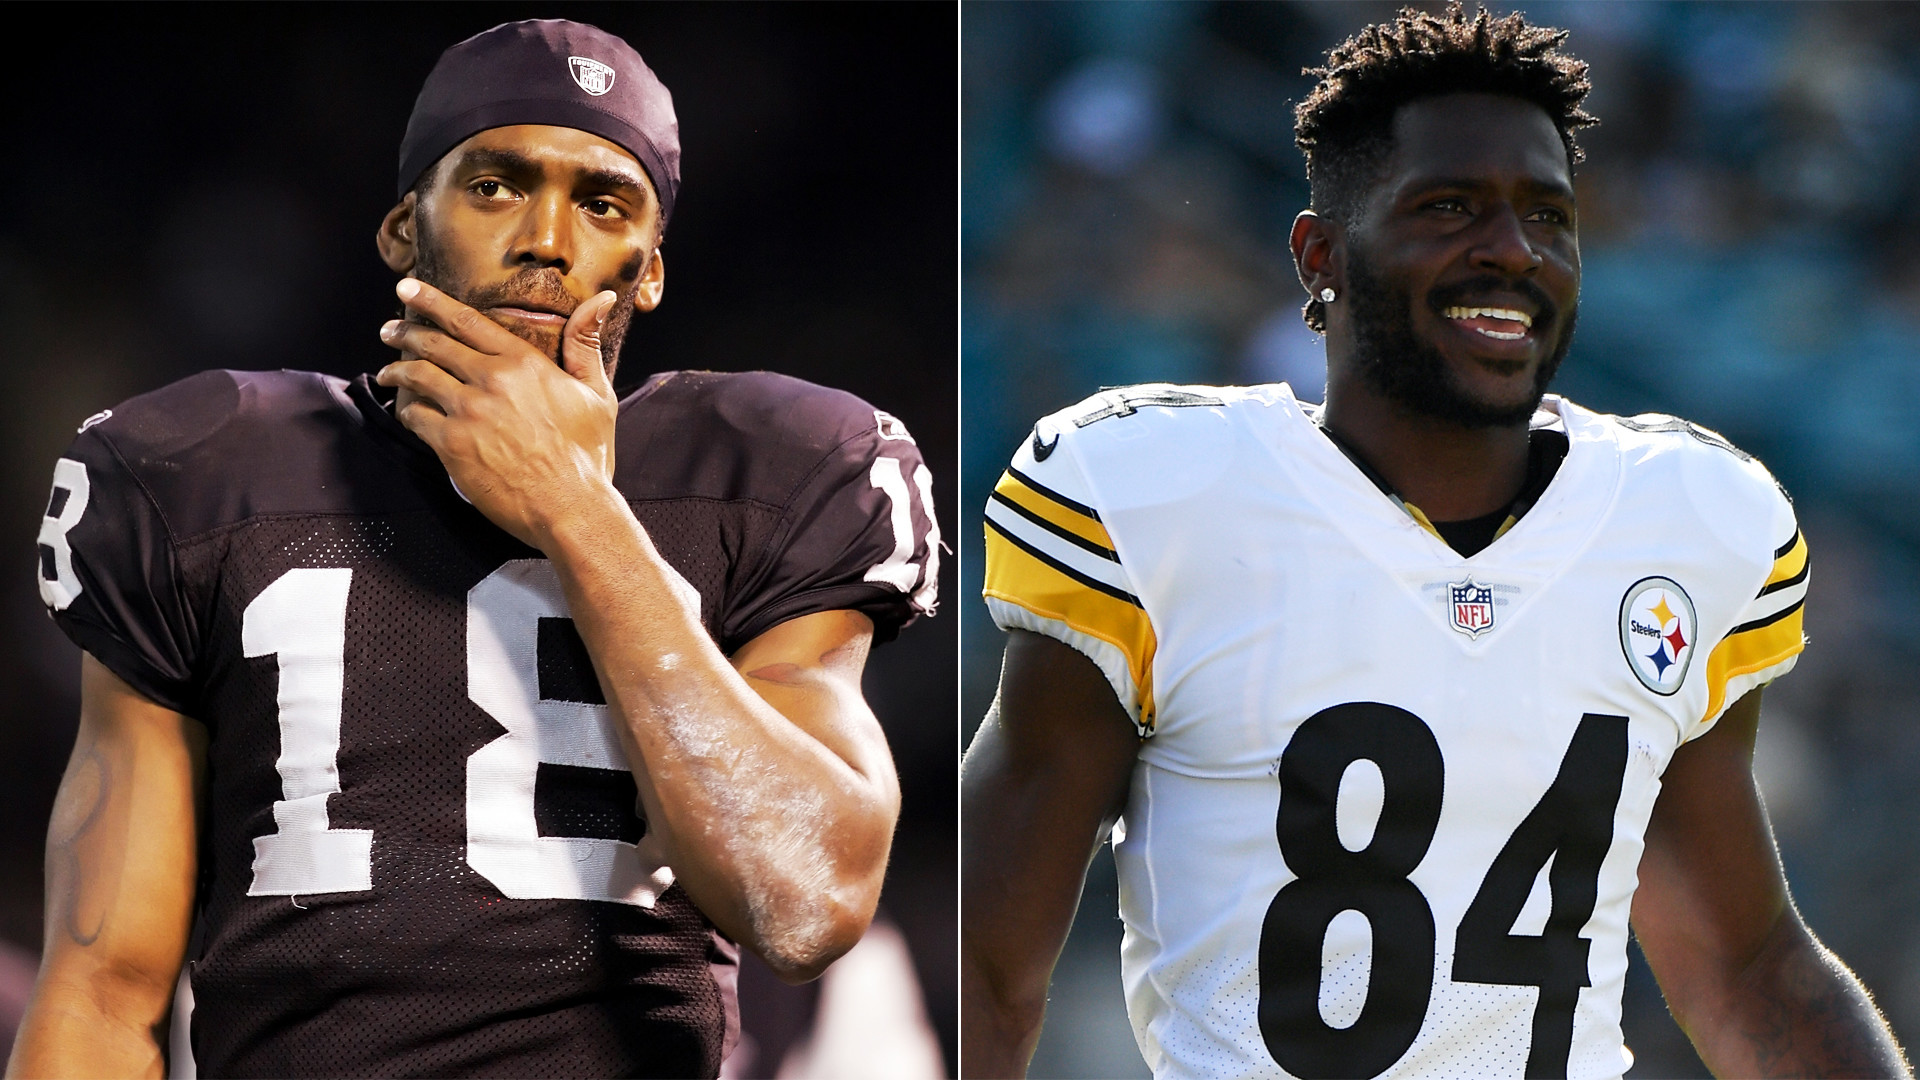 Res: 1920x1080, Randy Moss believes Antonio Brown 'hungry and determined' for Raiders | NBCS Bay Area